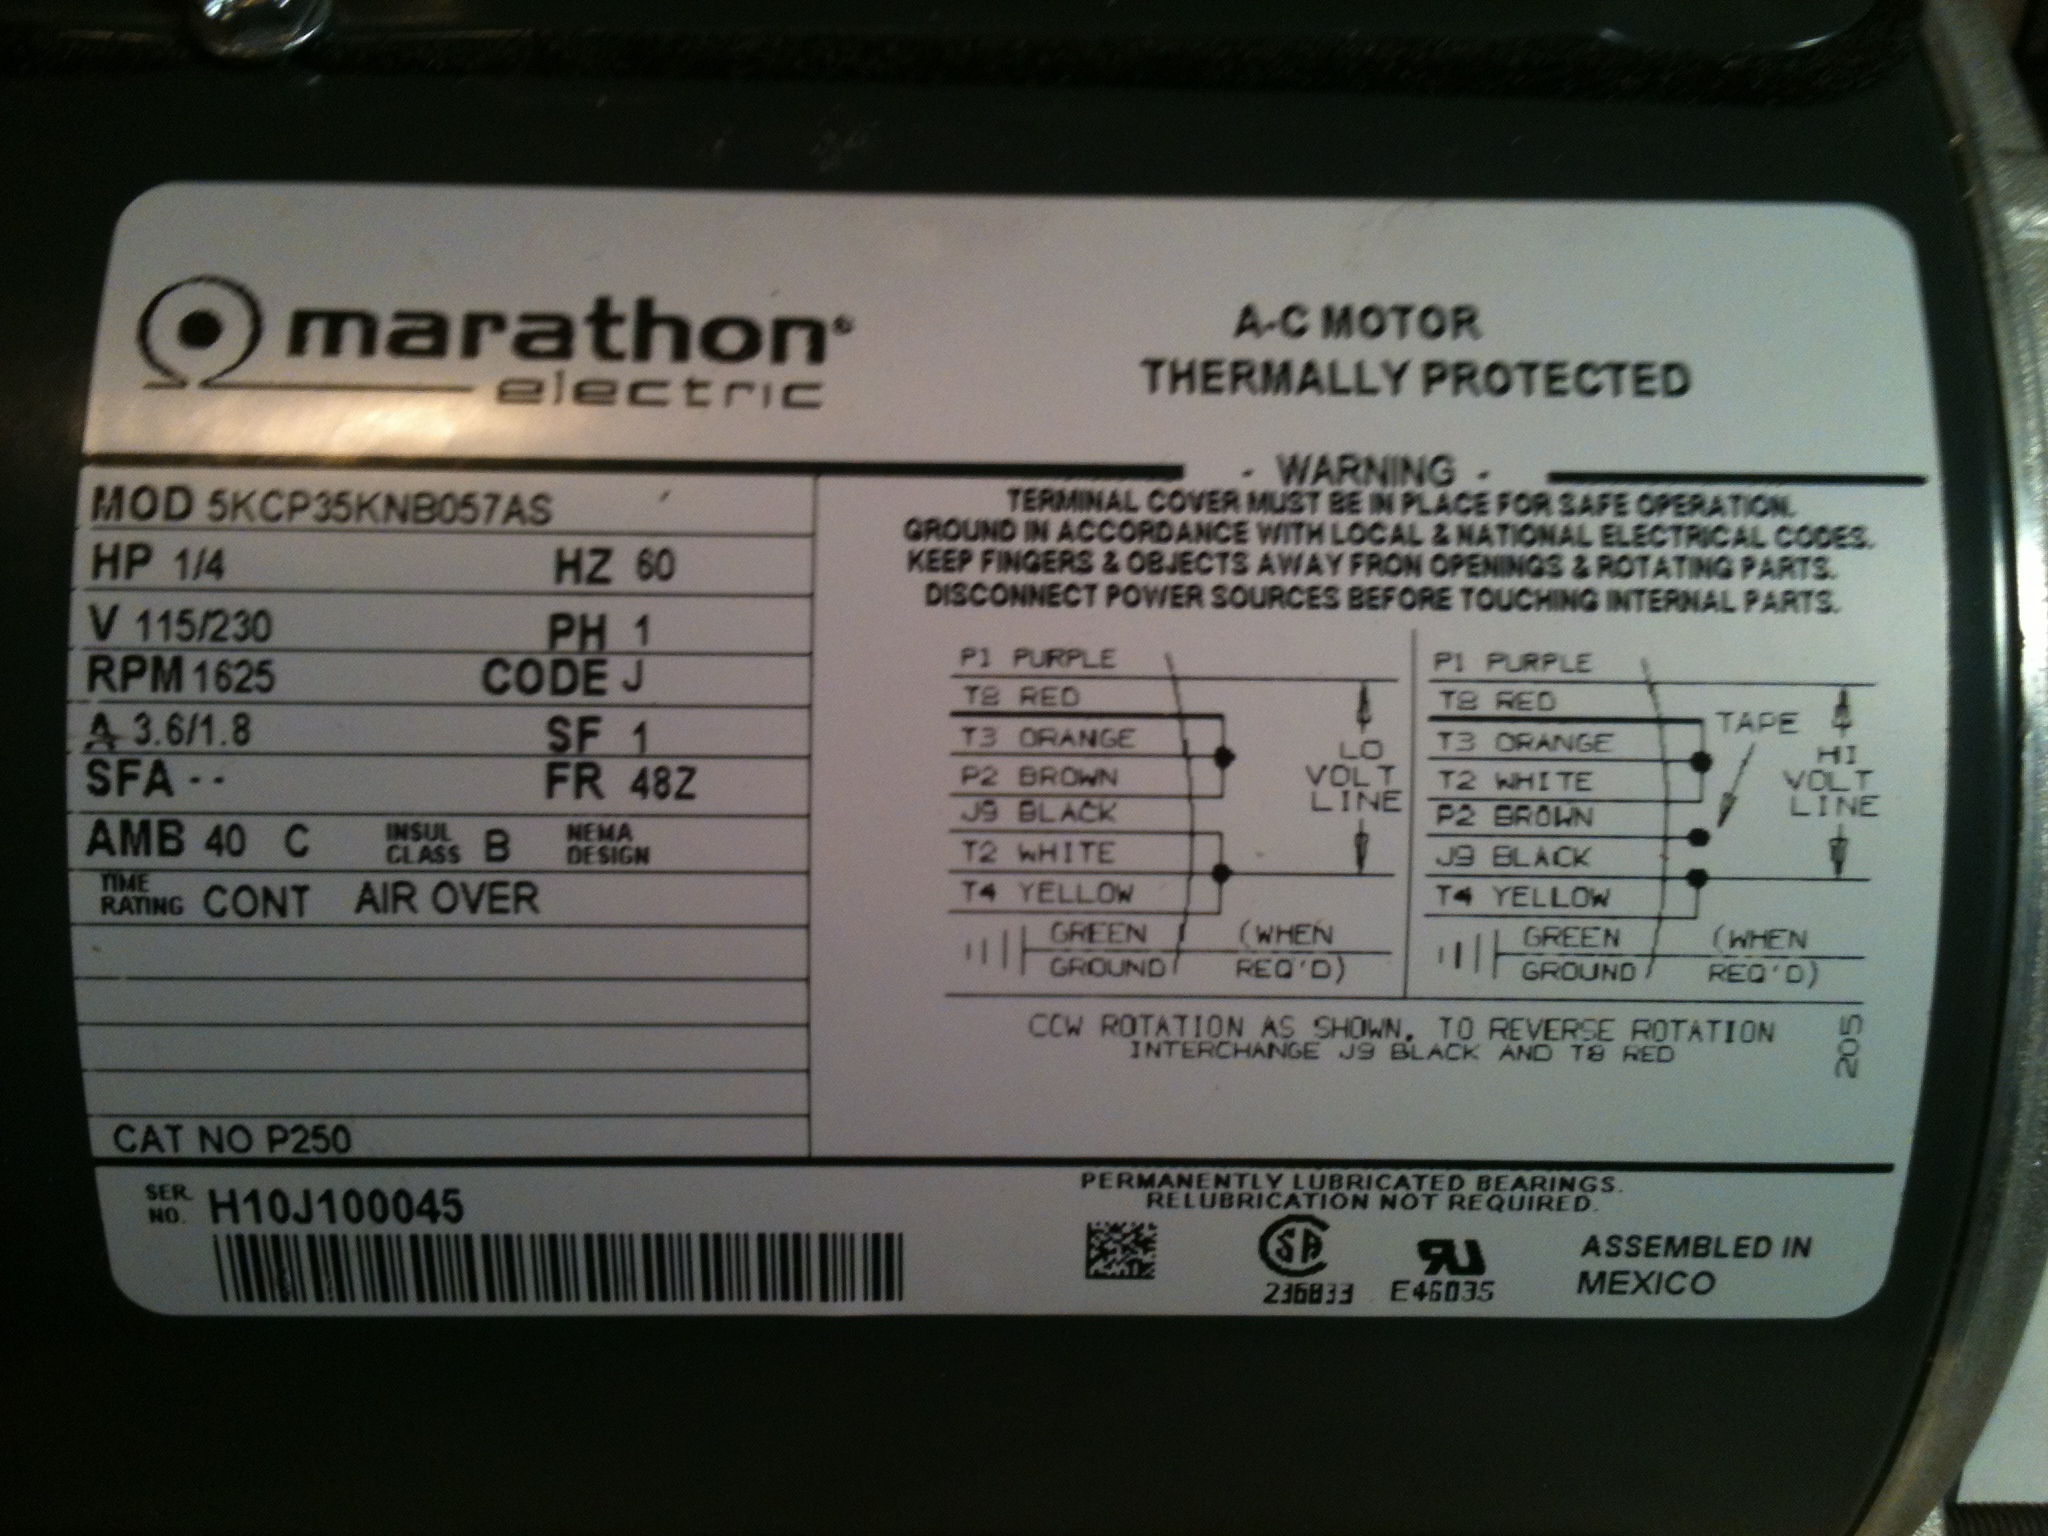 2012 01 24_021217_marathonmotor i just bought a marathon electric ac motor, hp 1 4 v 115 230 marathon electric motor wiring diagram at crackthecode.co